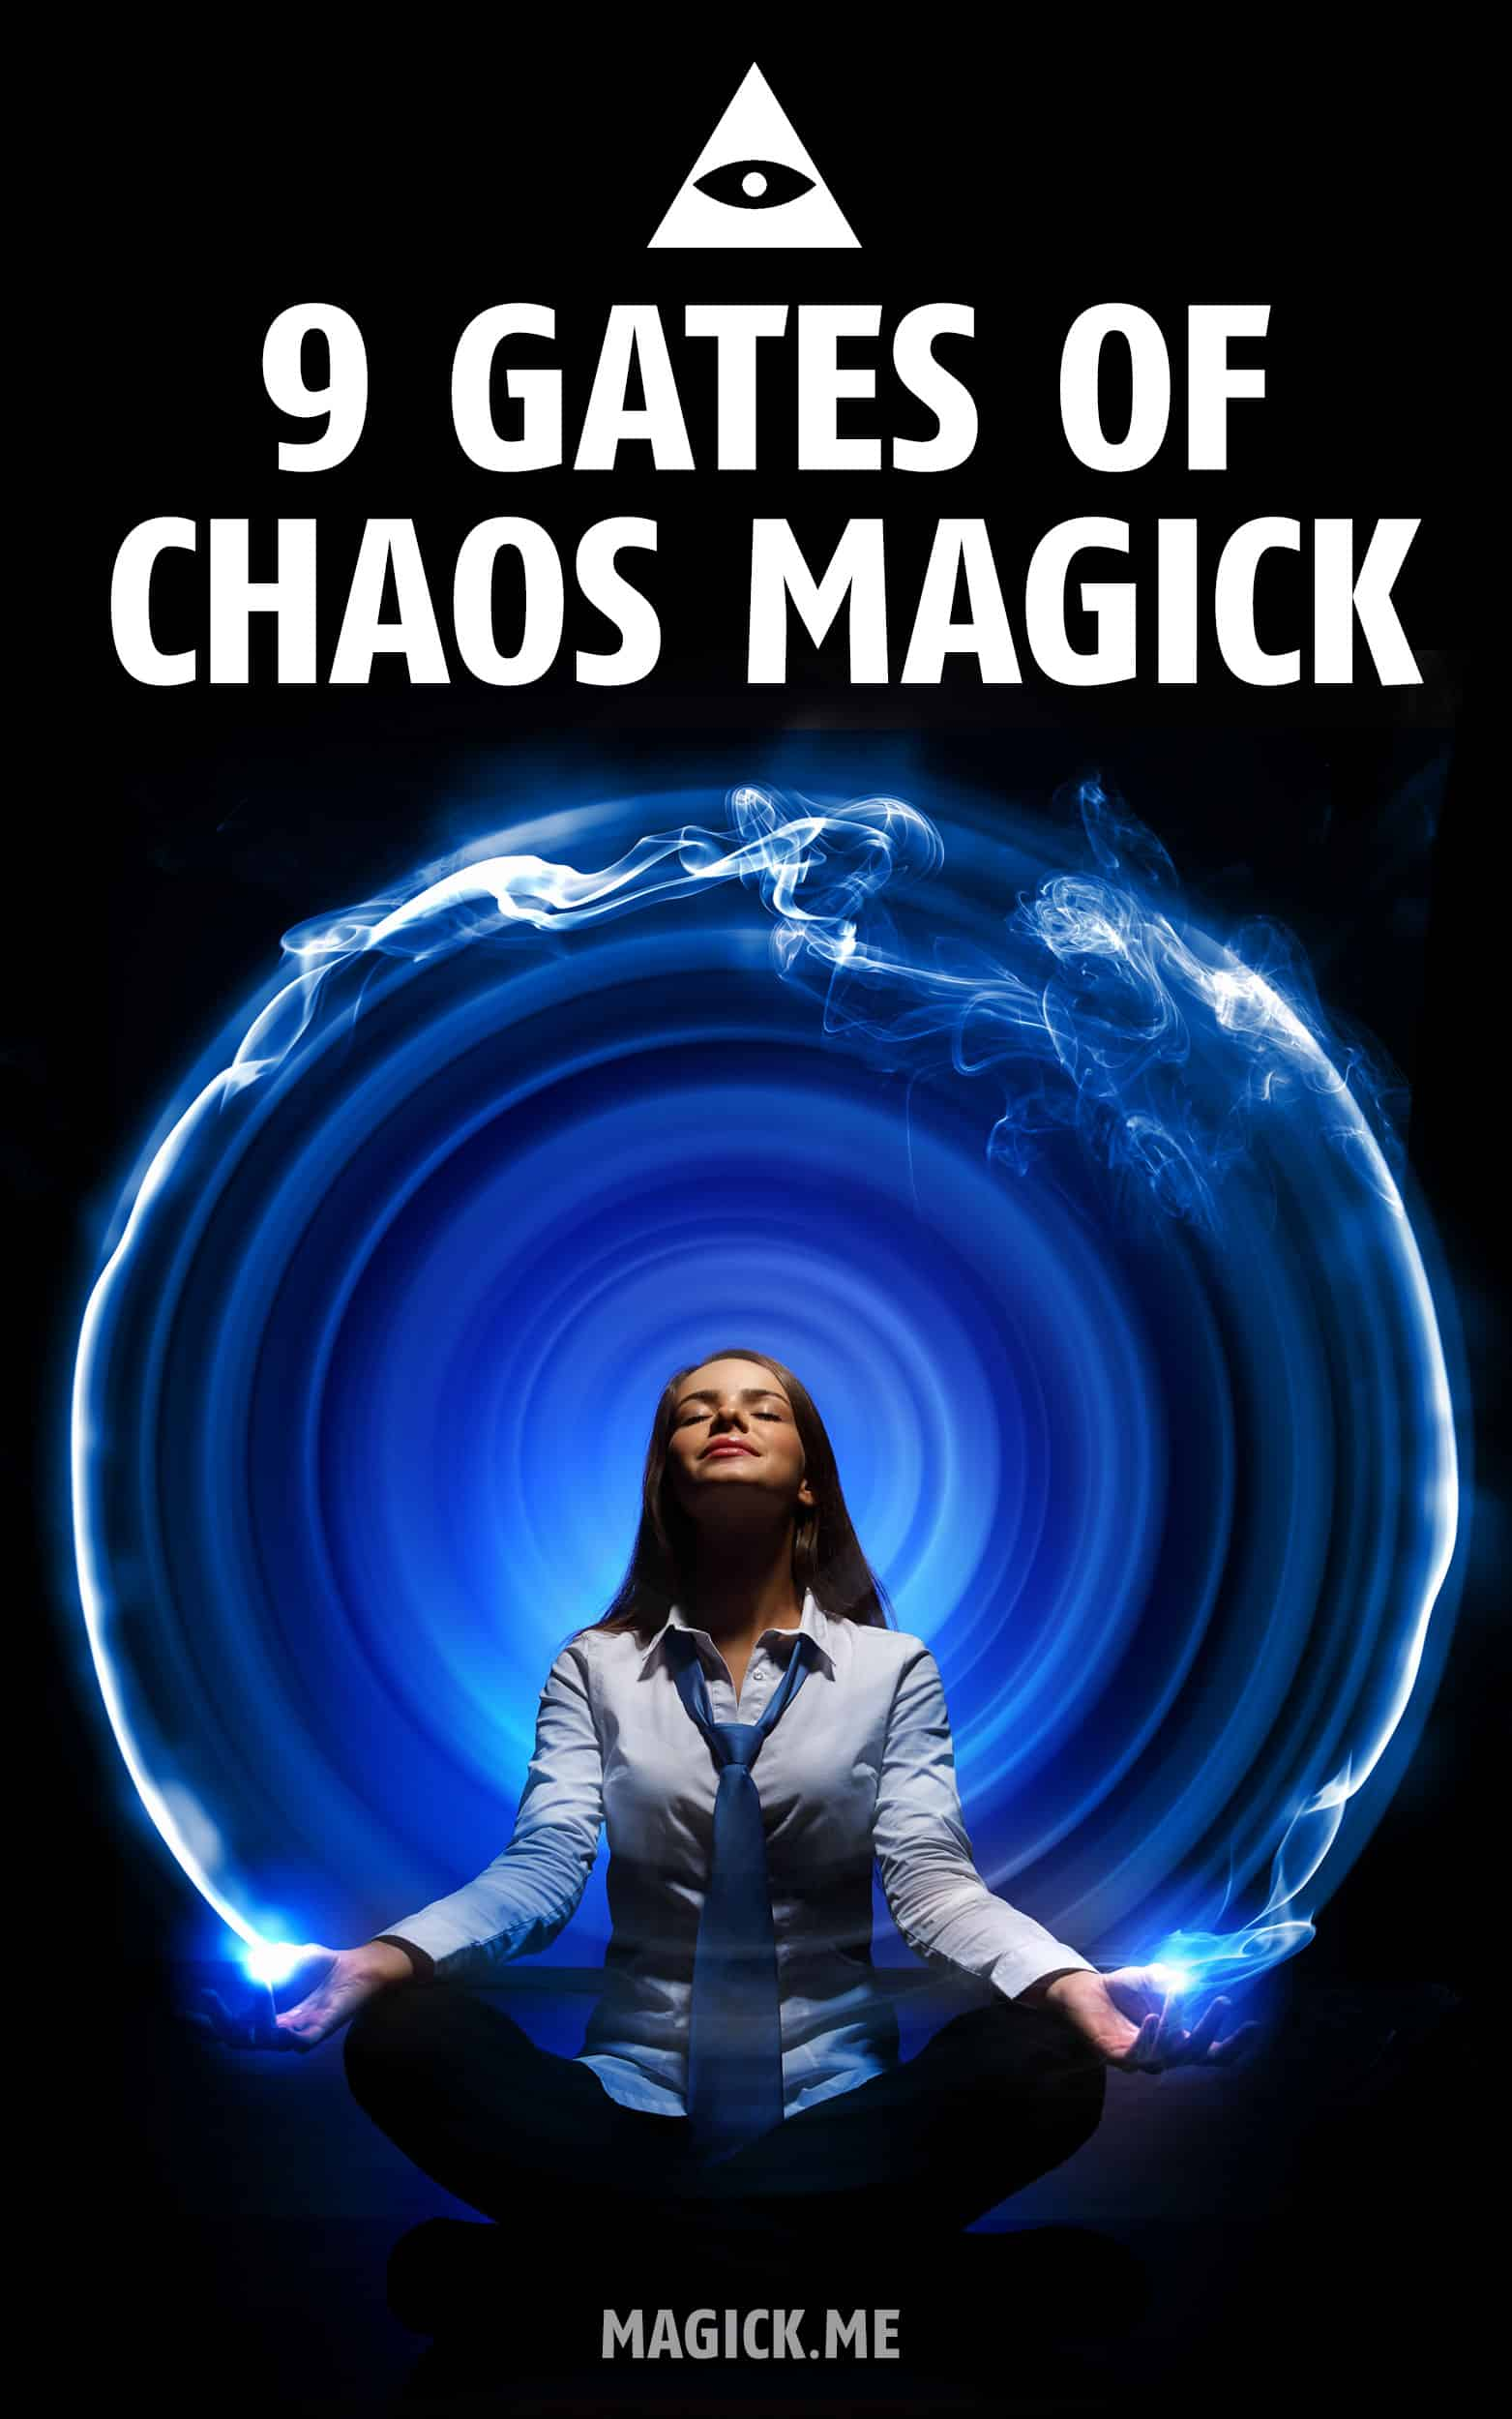 9 Gates of Chaos Magick